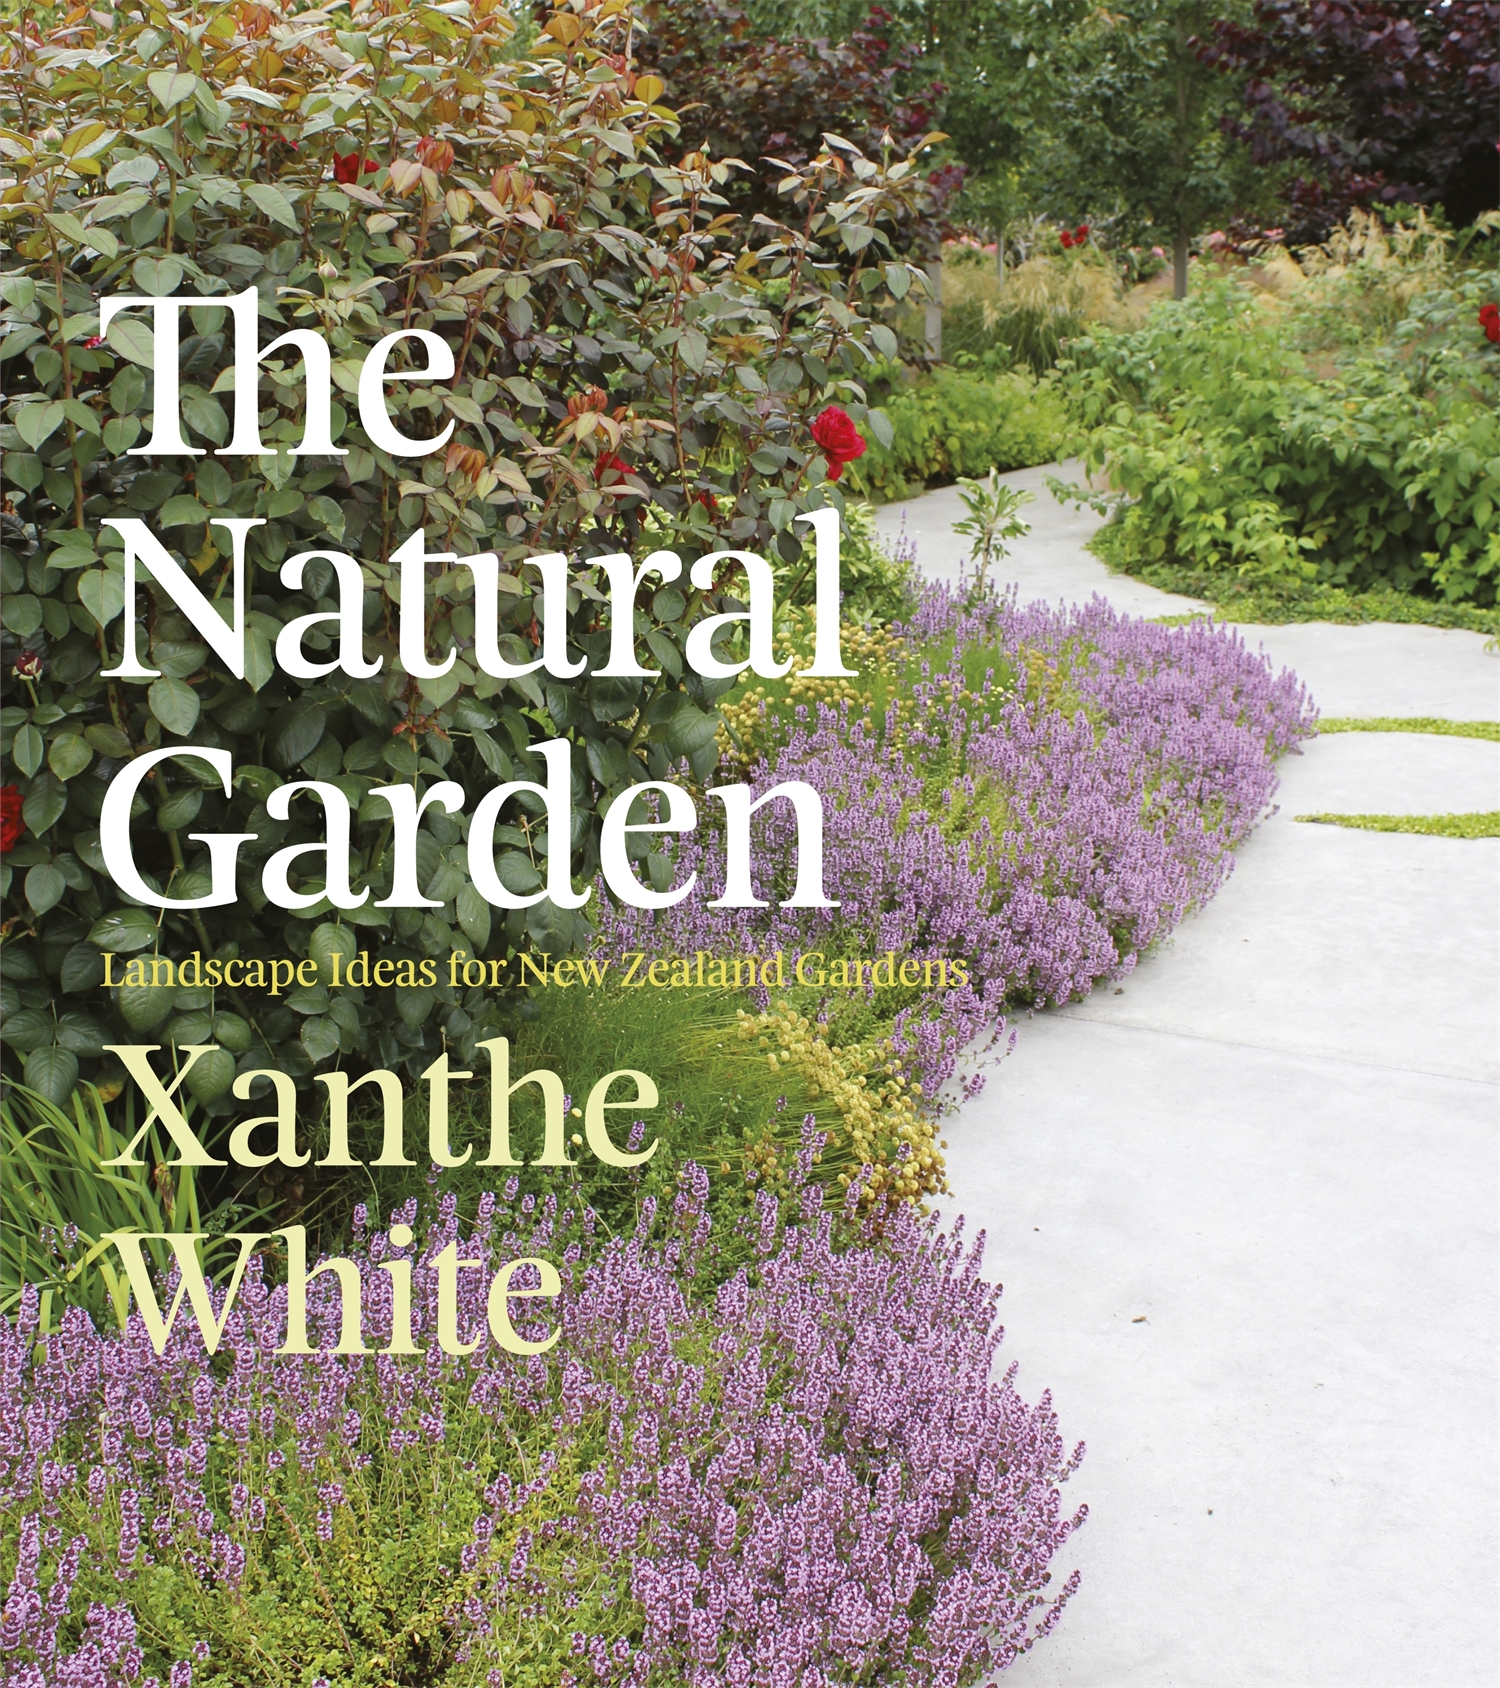 The Natural Garden  A sumptuous and inspirational landscape design book that looks at how award-winning landscape designer Xanthe White's signature style, which she calls the 'natural' or 'wild' garden can be applied to flower, native, rural, dry, inner city, productive, subtropical, coastal, and small city wall and roof gardens.  Warmly and expertly written and lavishly illustrated with photos and Xanthe' sown hand-drawn plans, the book also contains best-plant guides for each garden type as well as growing and composting advice. It's almost as good as having Xanthe call round for a consultation!  Random House NZ 2012